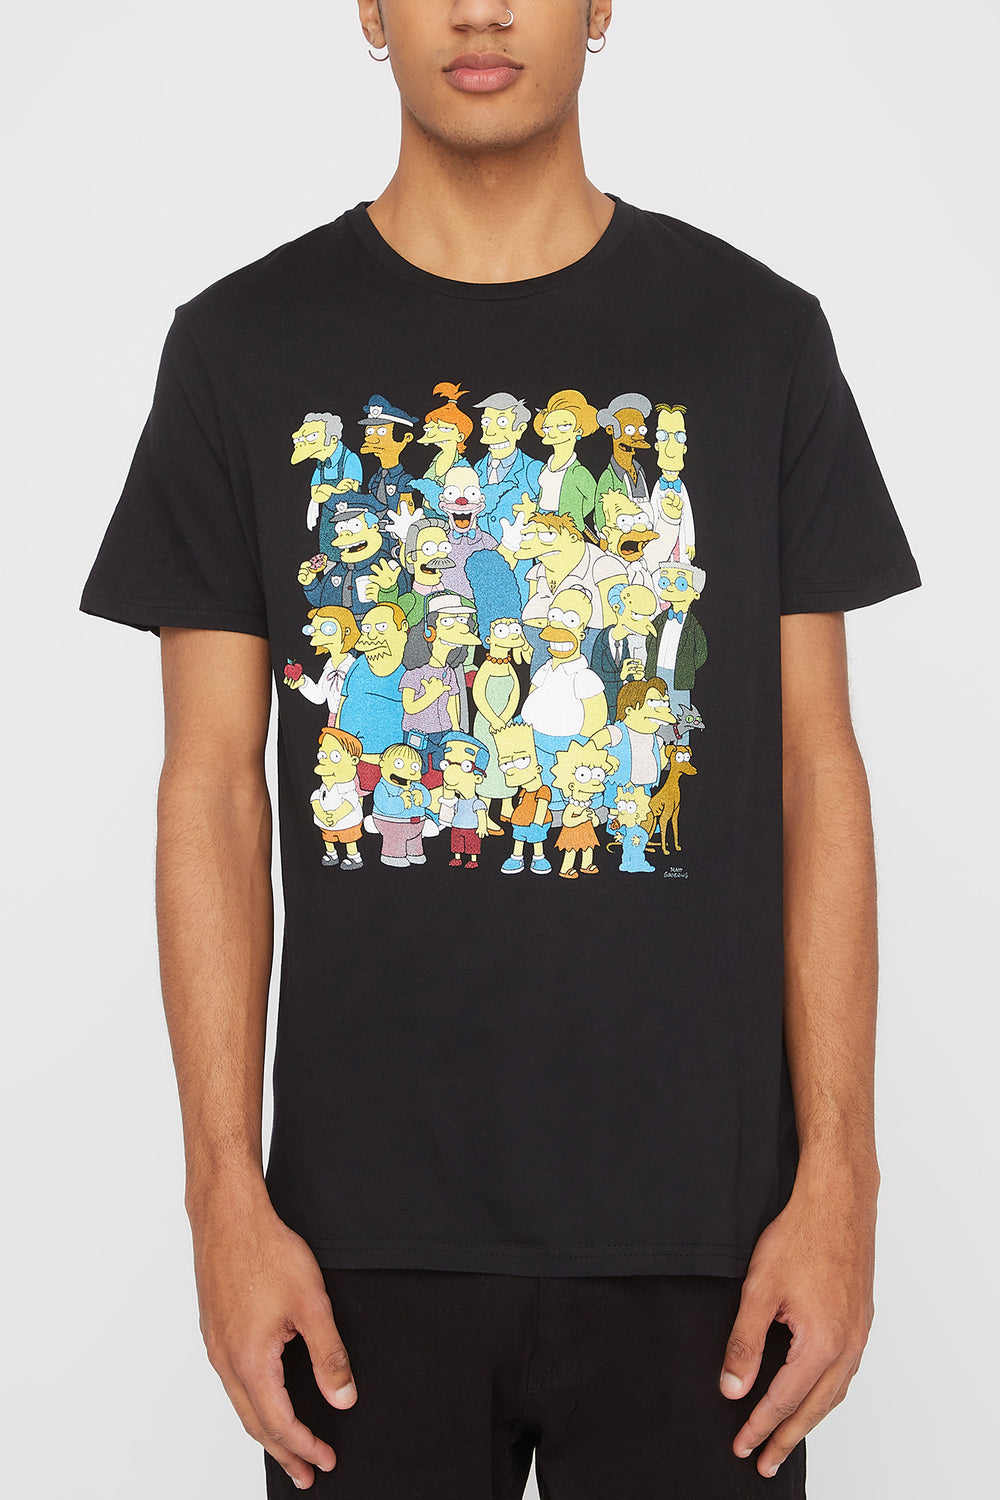 The Simpsons Mens Graphic T-Shirt Black